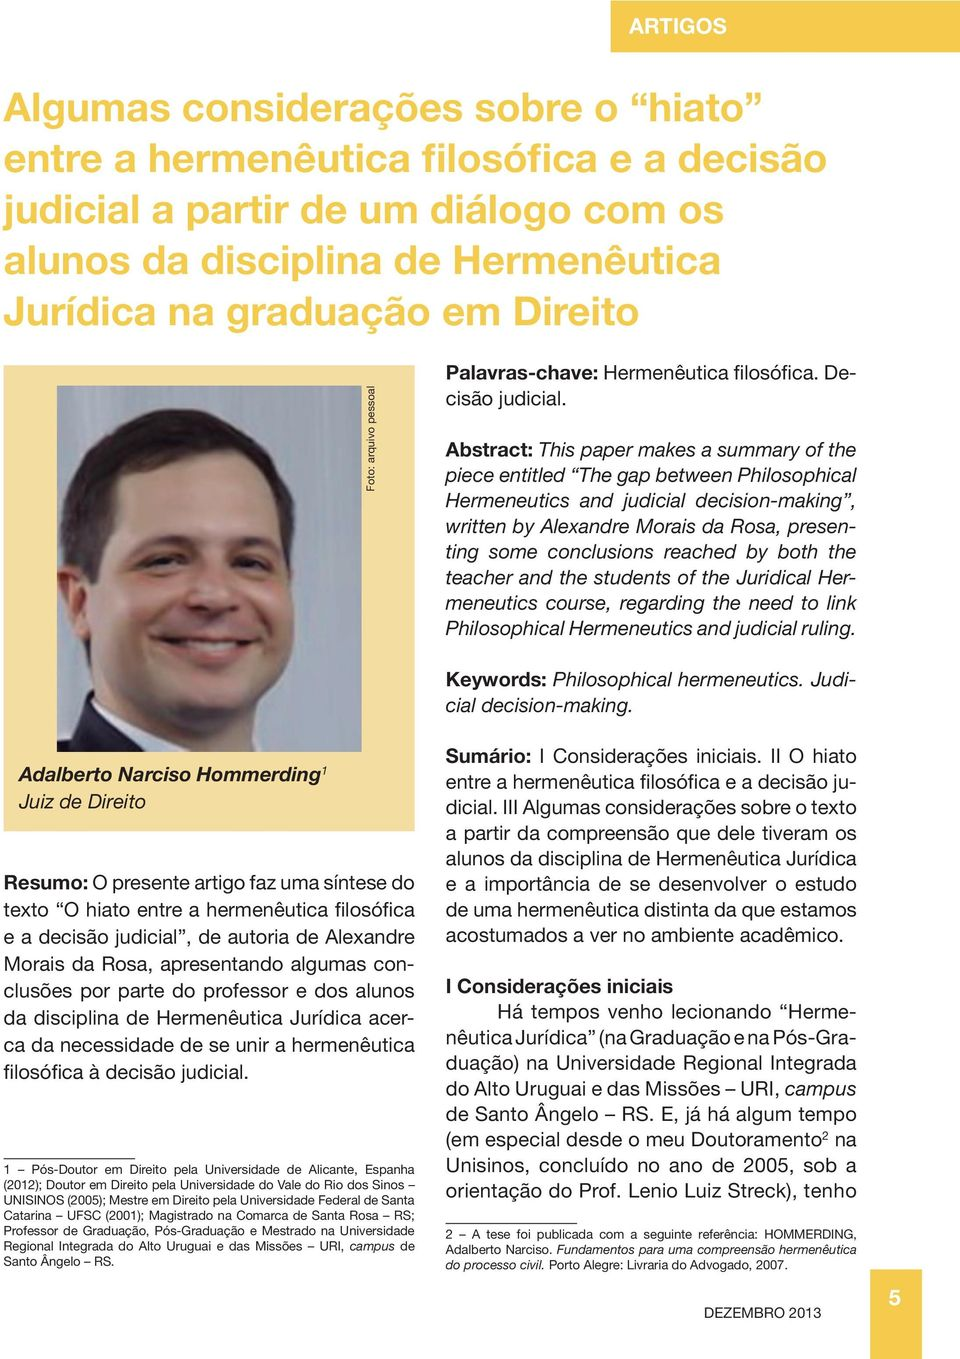 Abstract: This paper makes a summary of the piece entitled The gap between Philosophical Hermeneutics and judicial decision-making, written by Alexandre Morais da Rosa, presenting some conclusions